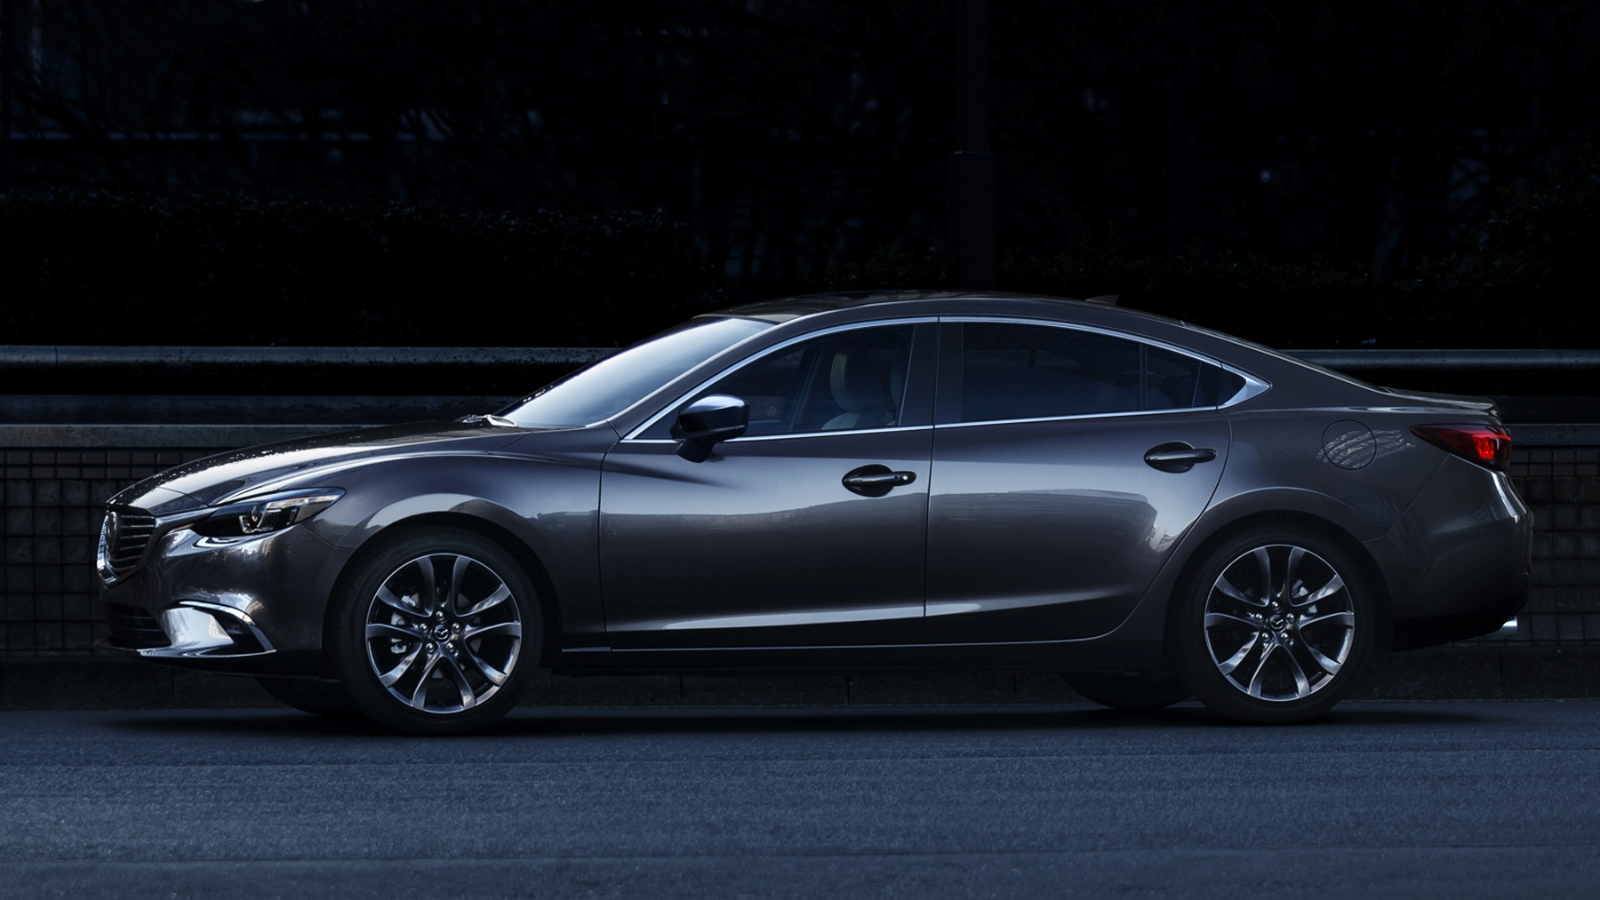 Mazda Certified Pre Owned >> Mazda6: What's To Come in 2017, Part II - CardinaleWay Mazda Corona